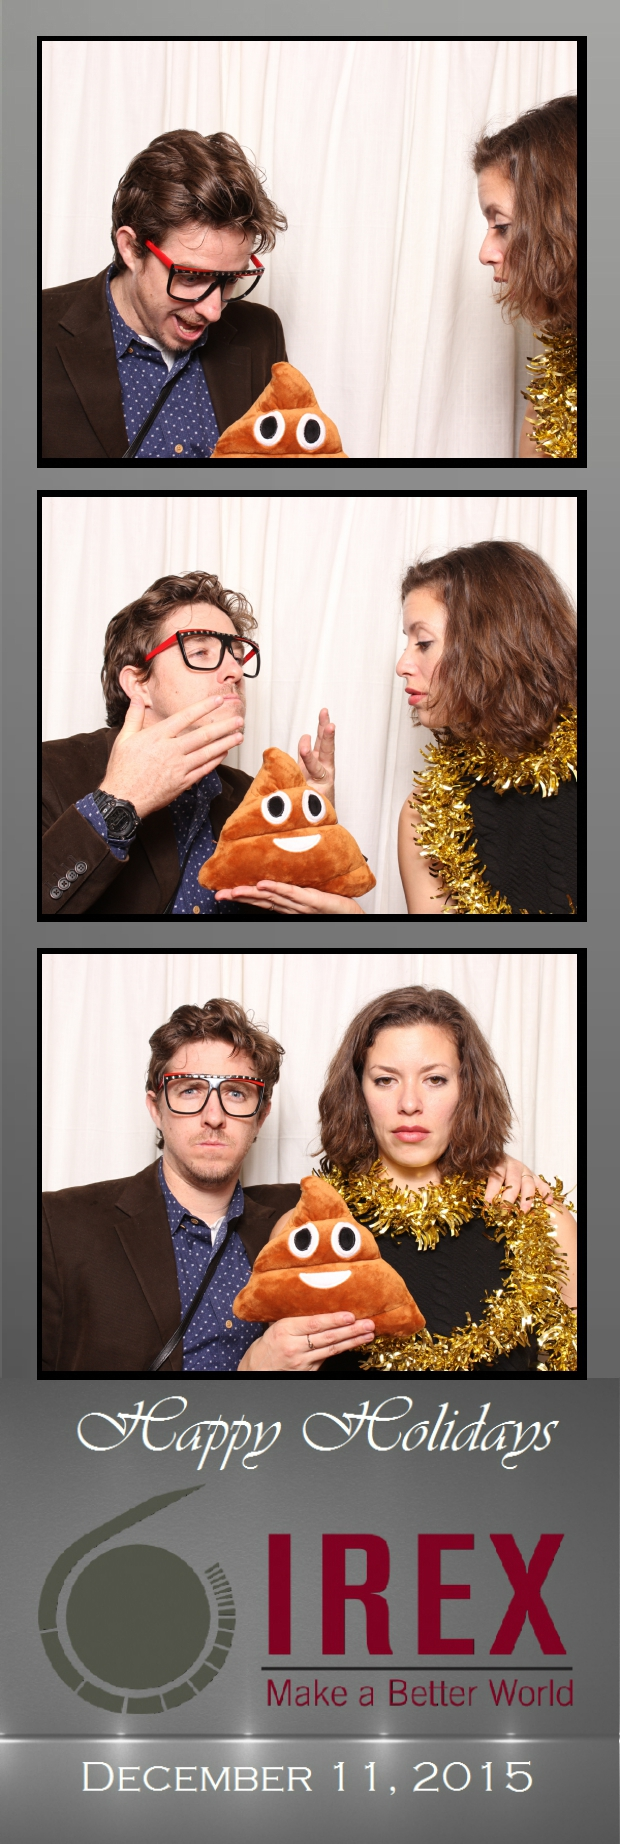 Guest House Events Photo Booth Strips IREX (92).jpg